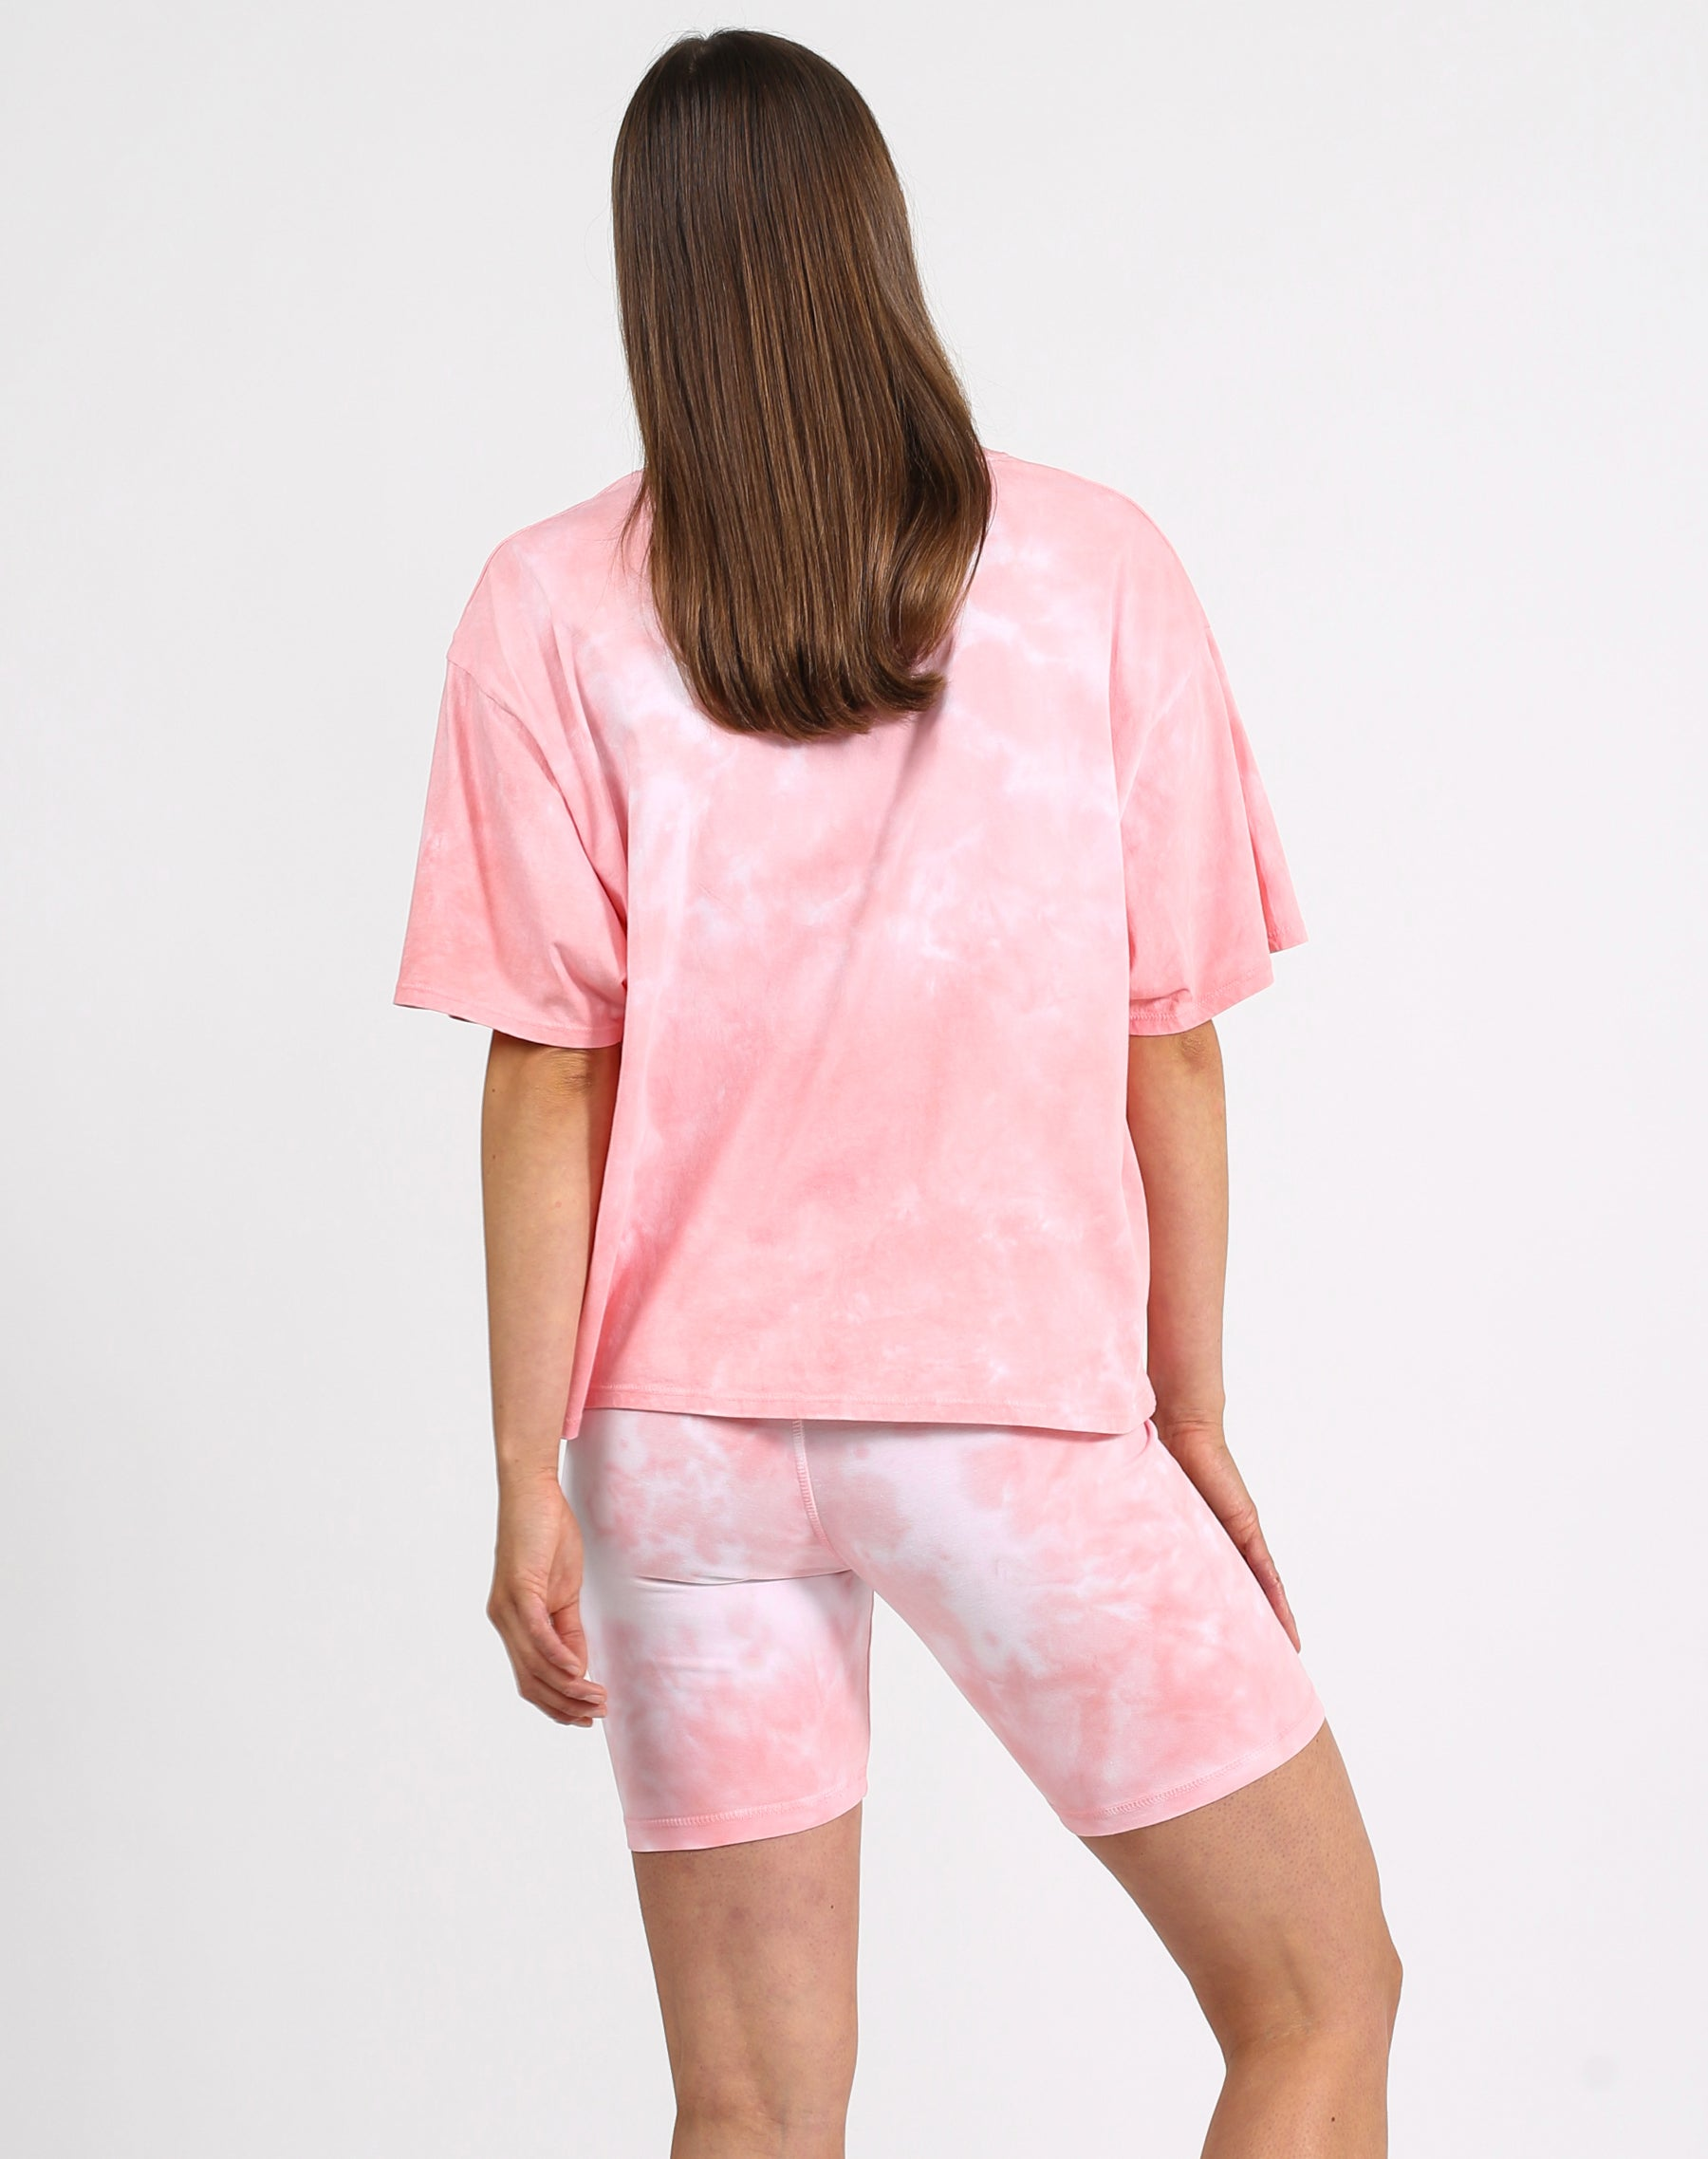 This is a photo of a model wearing the jet black boxy retro tee in pink marble by Brunette the Label x Juicy Couture.